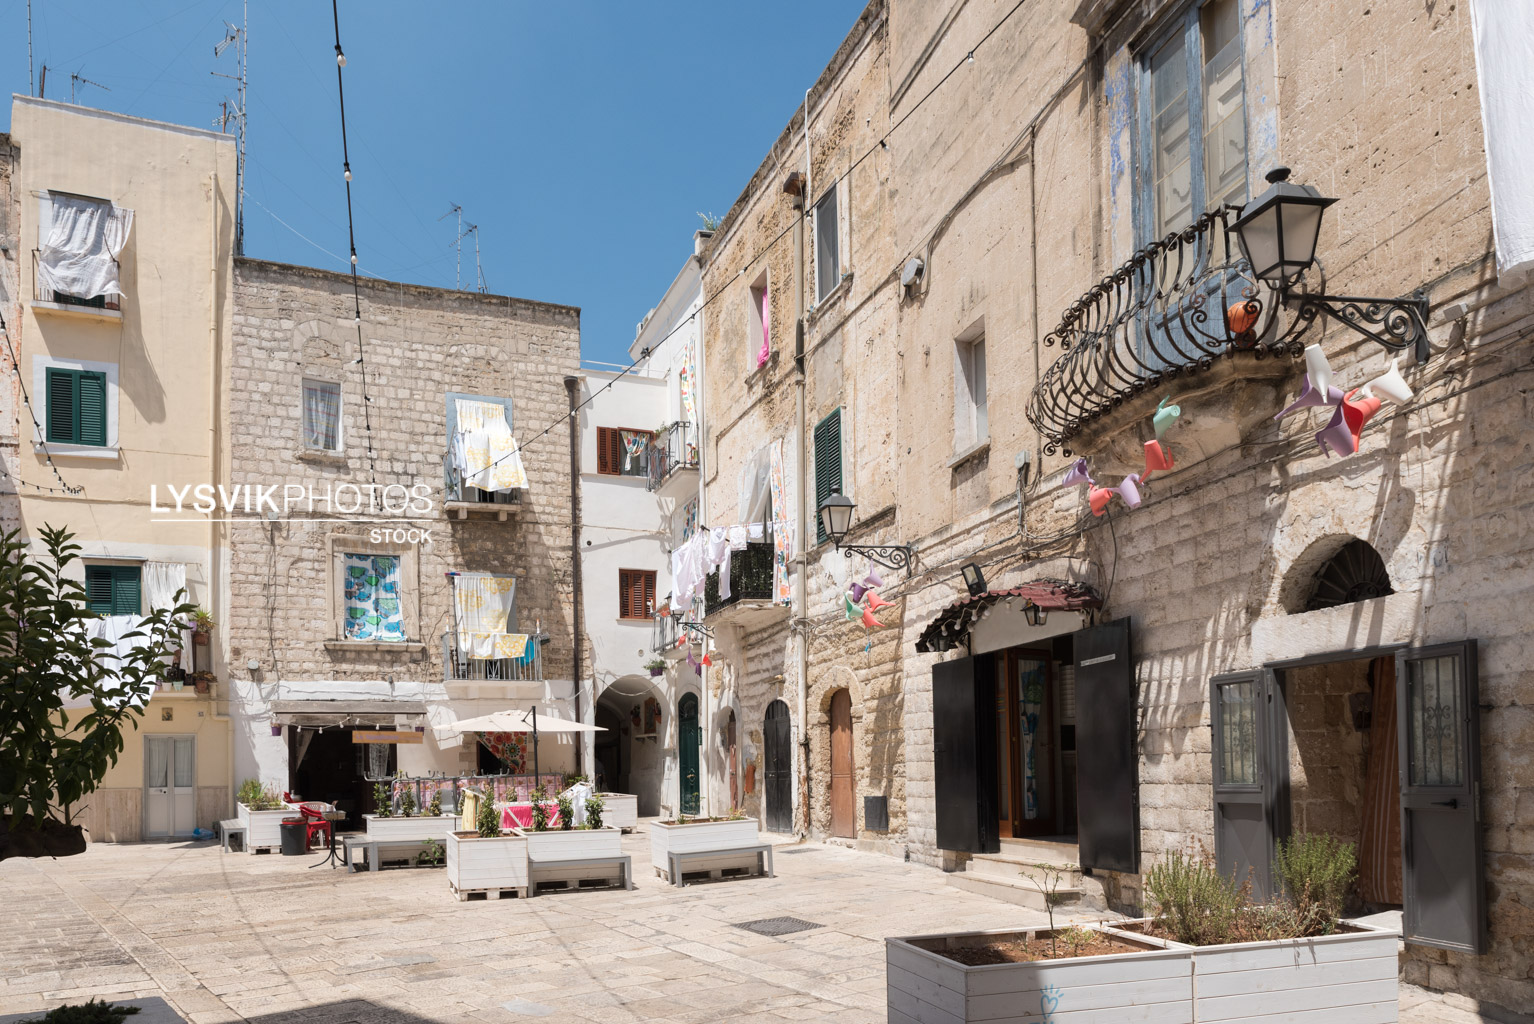 Picturesque square in the old town of Bari, Puglia